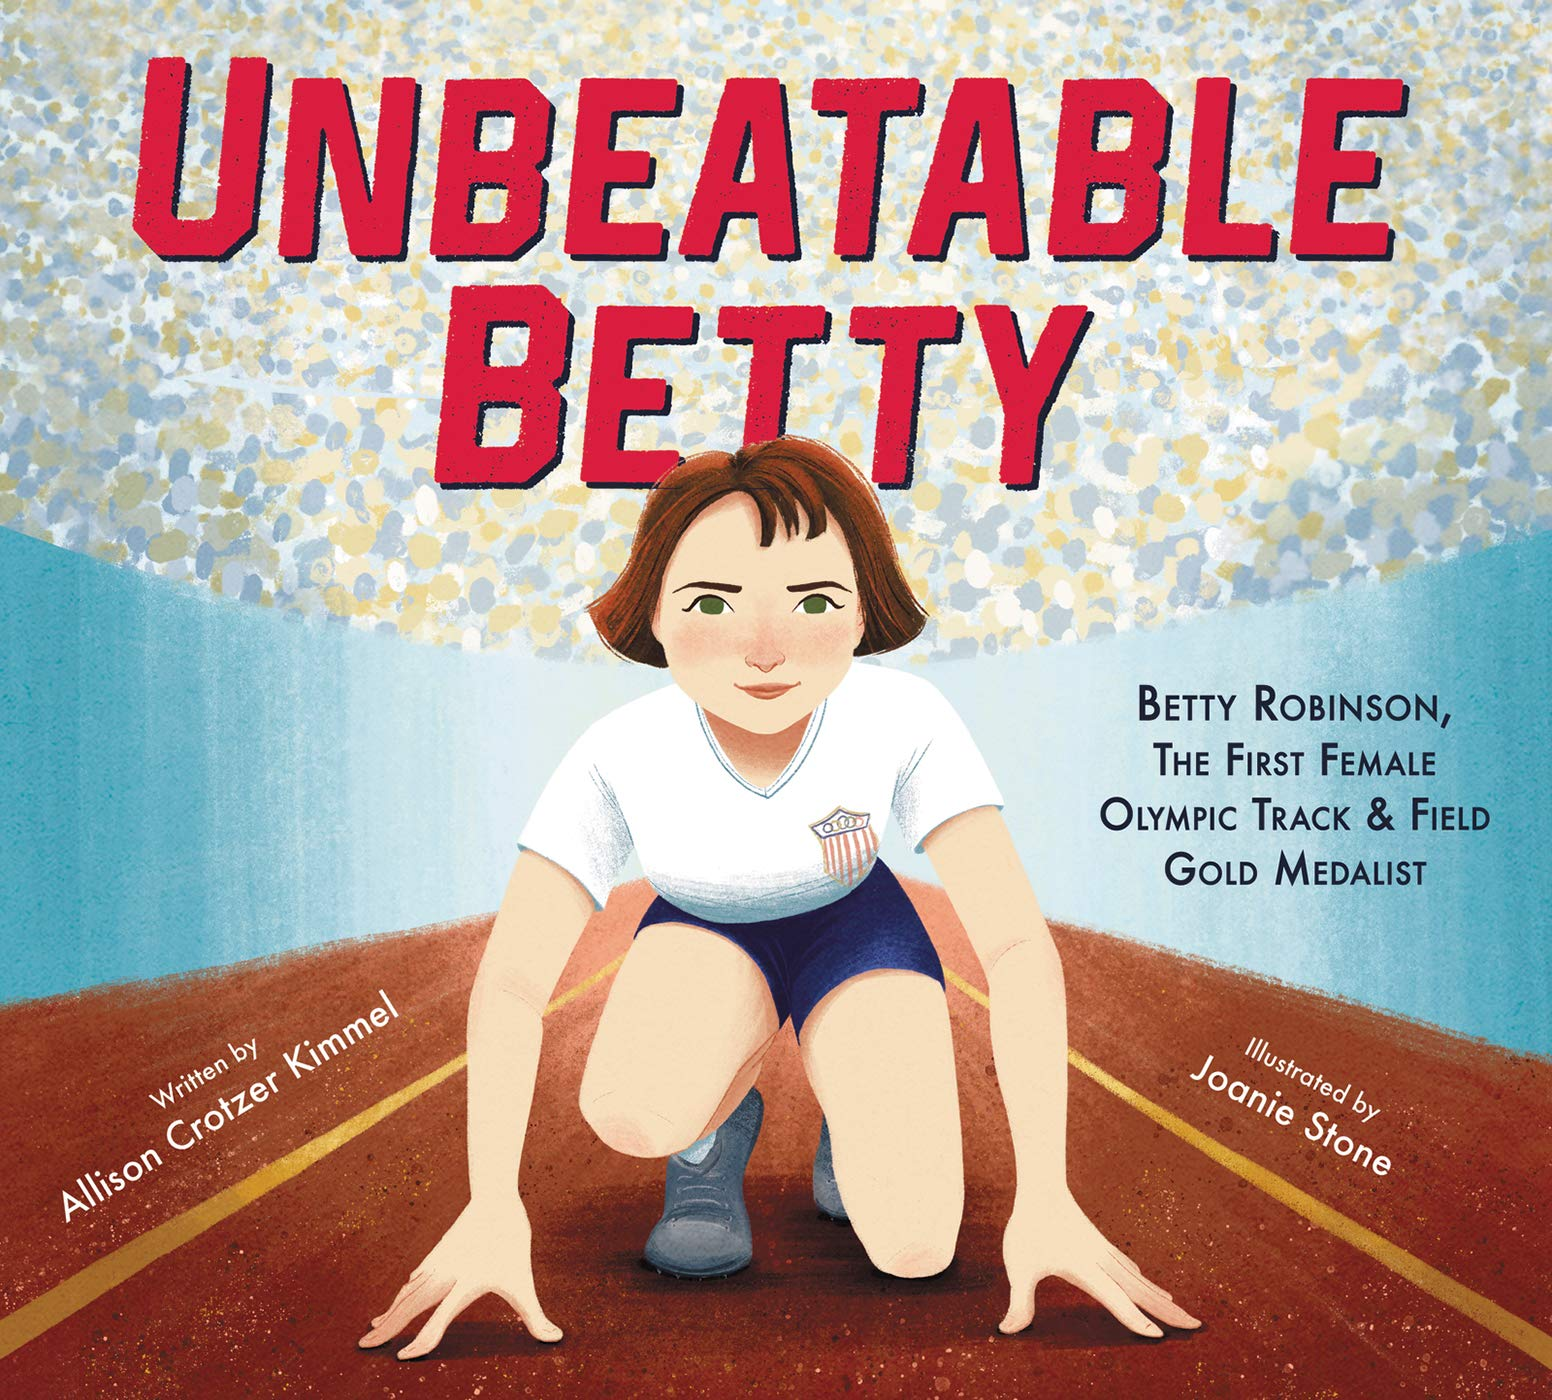 Unbeatable Betty: Betty Robinson, the First Female Olympic Track & Field Gold Medalist